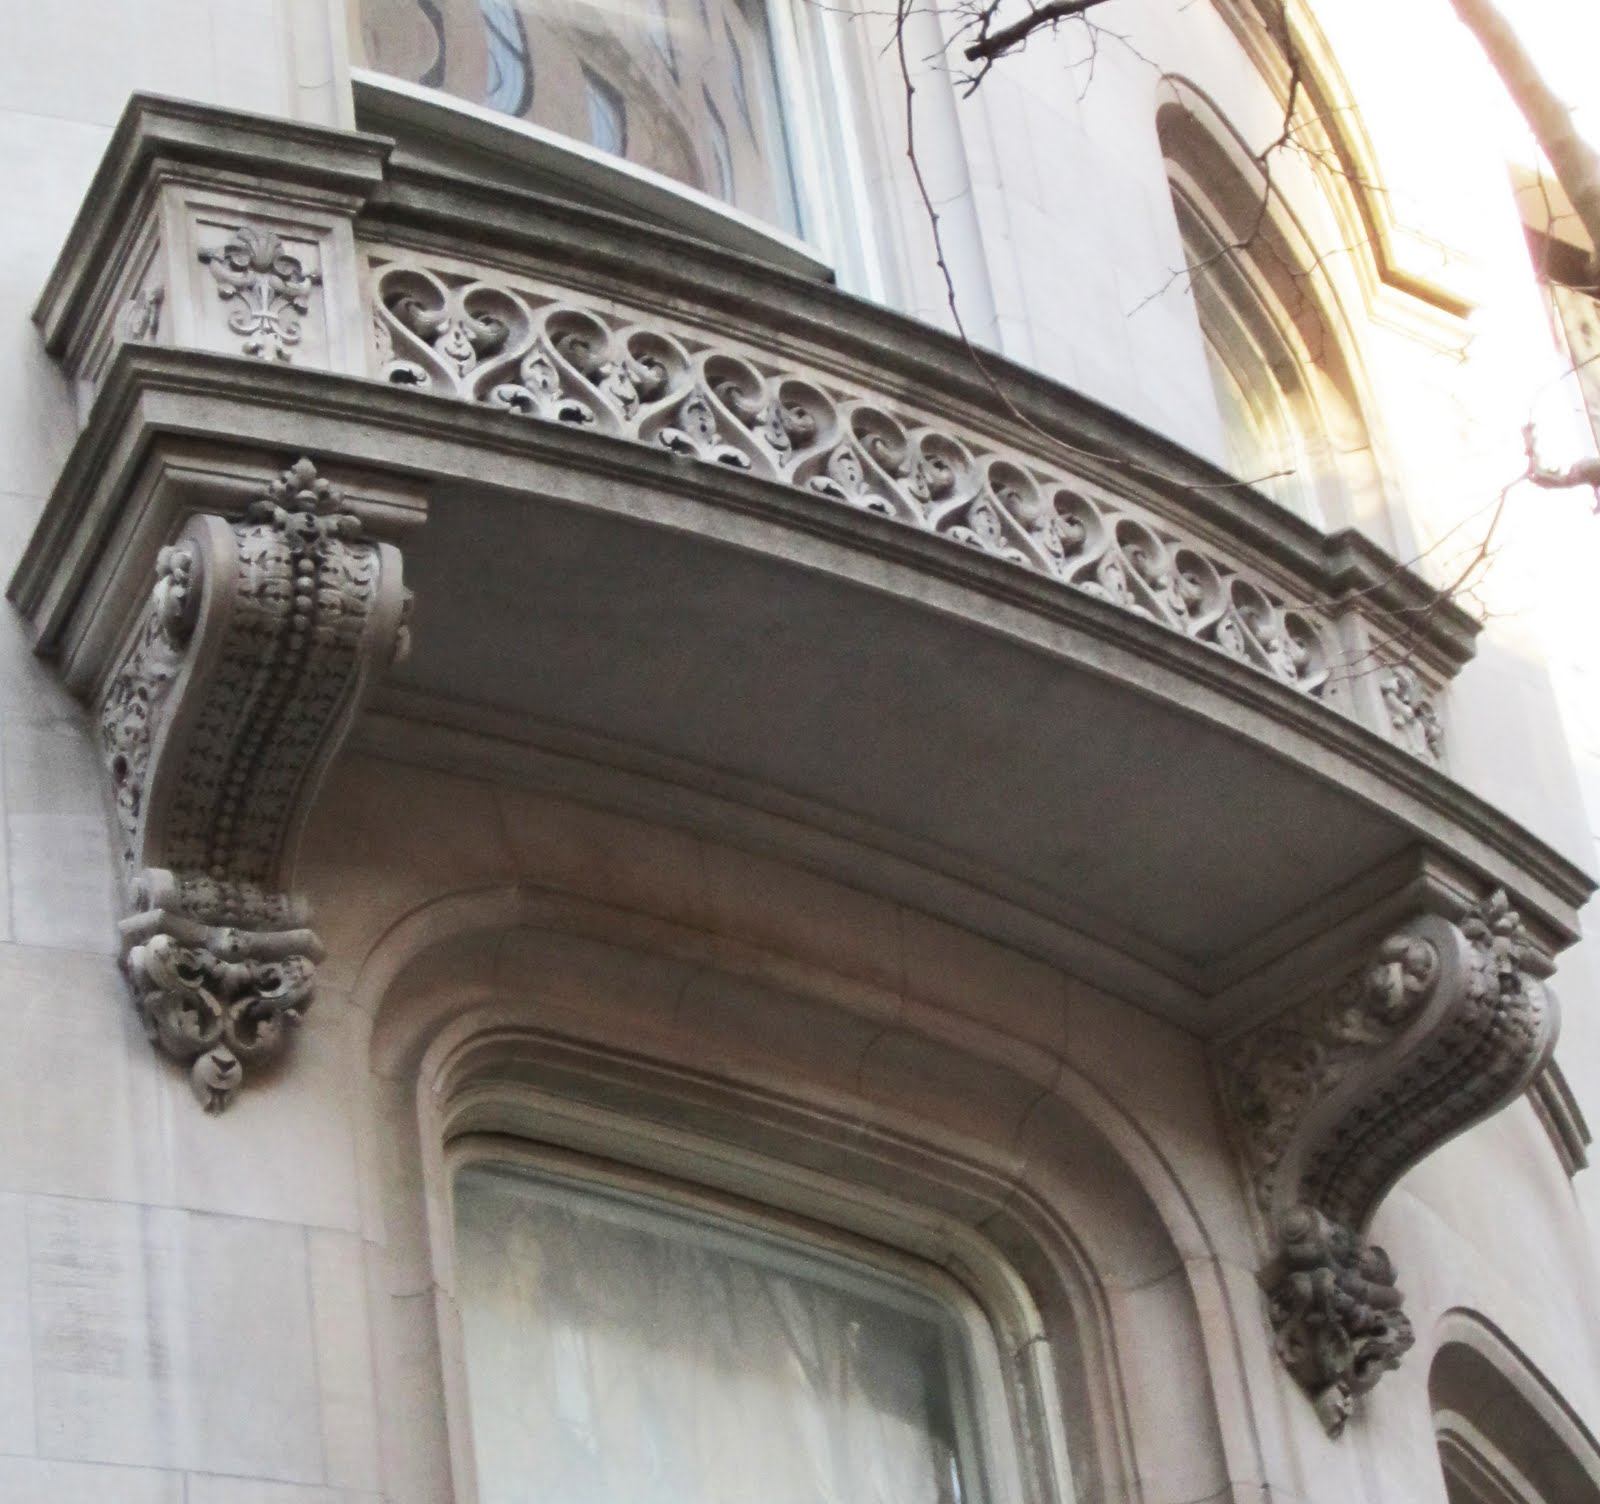 BIG OLD HOUSES: Brackets And Balconies